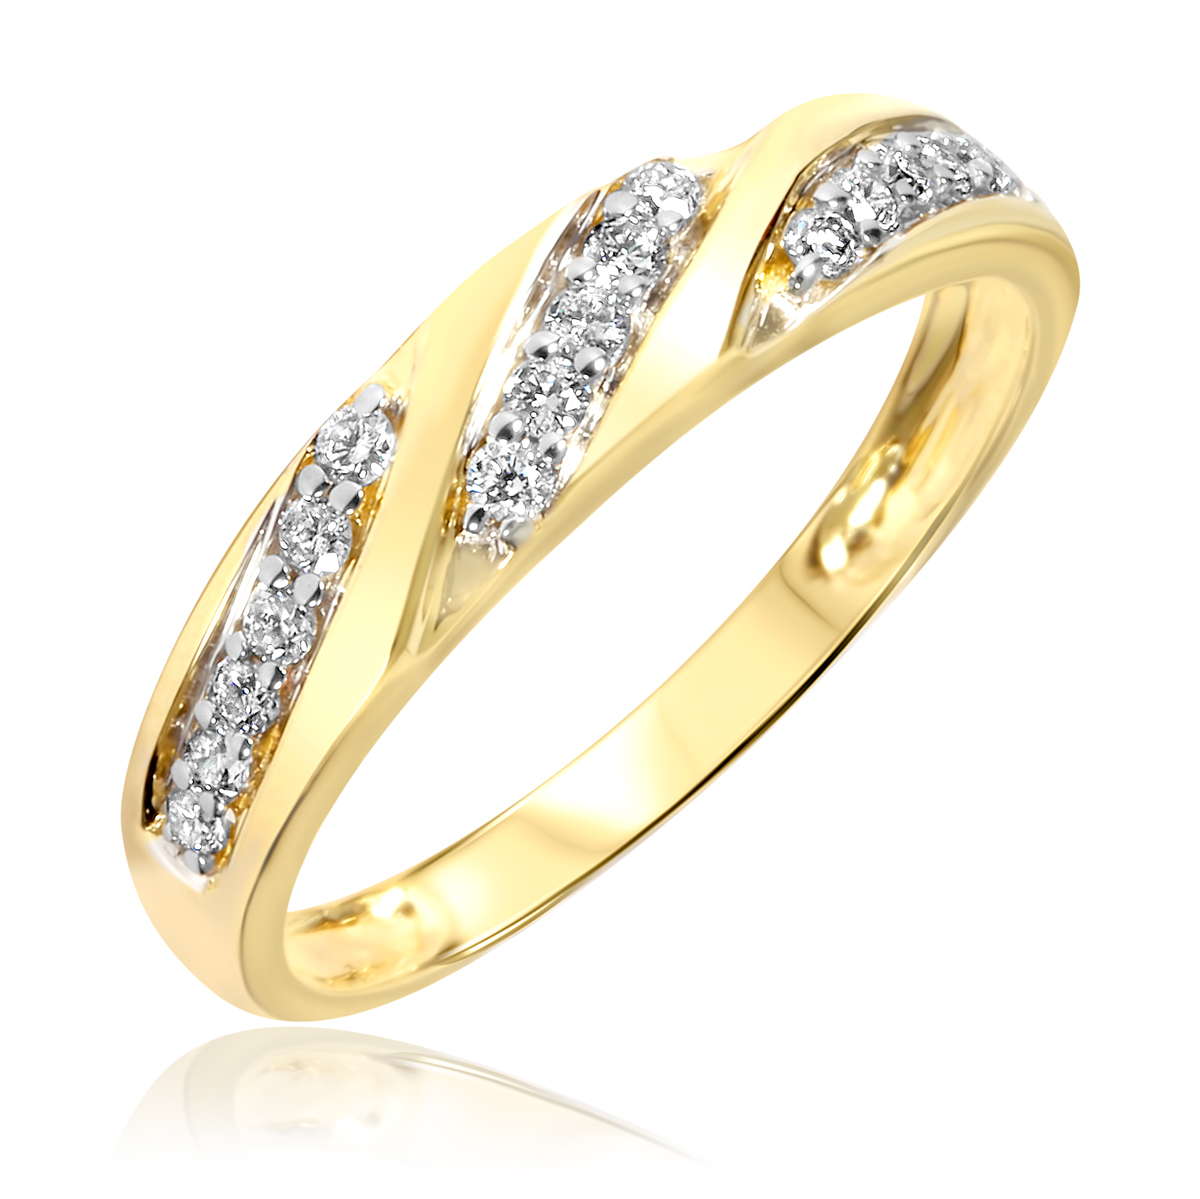 1 4 carat tw diamond women39s wedding ring 14k yellow With gold wedding rings for women